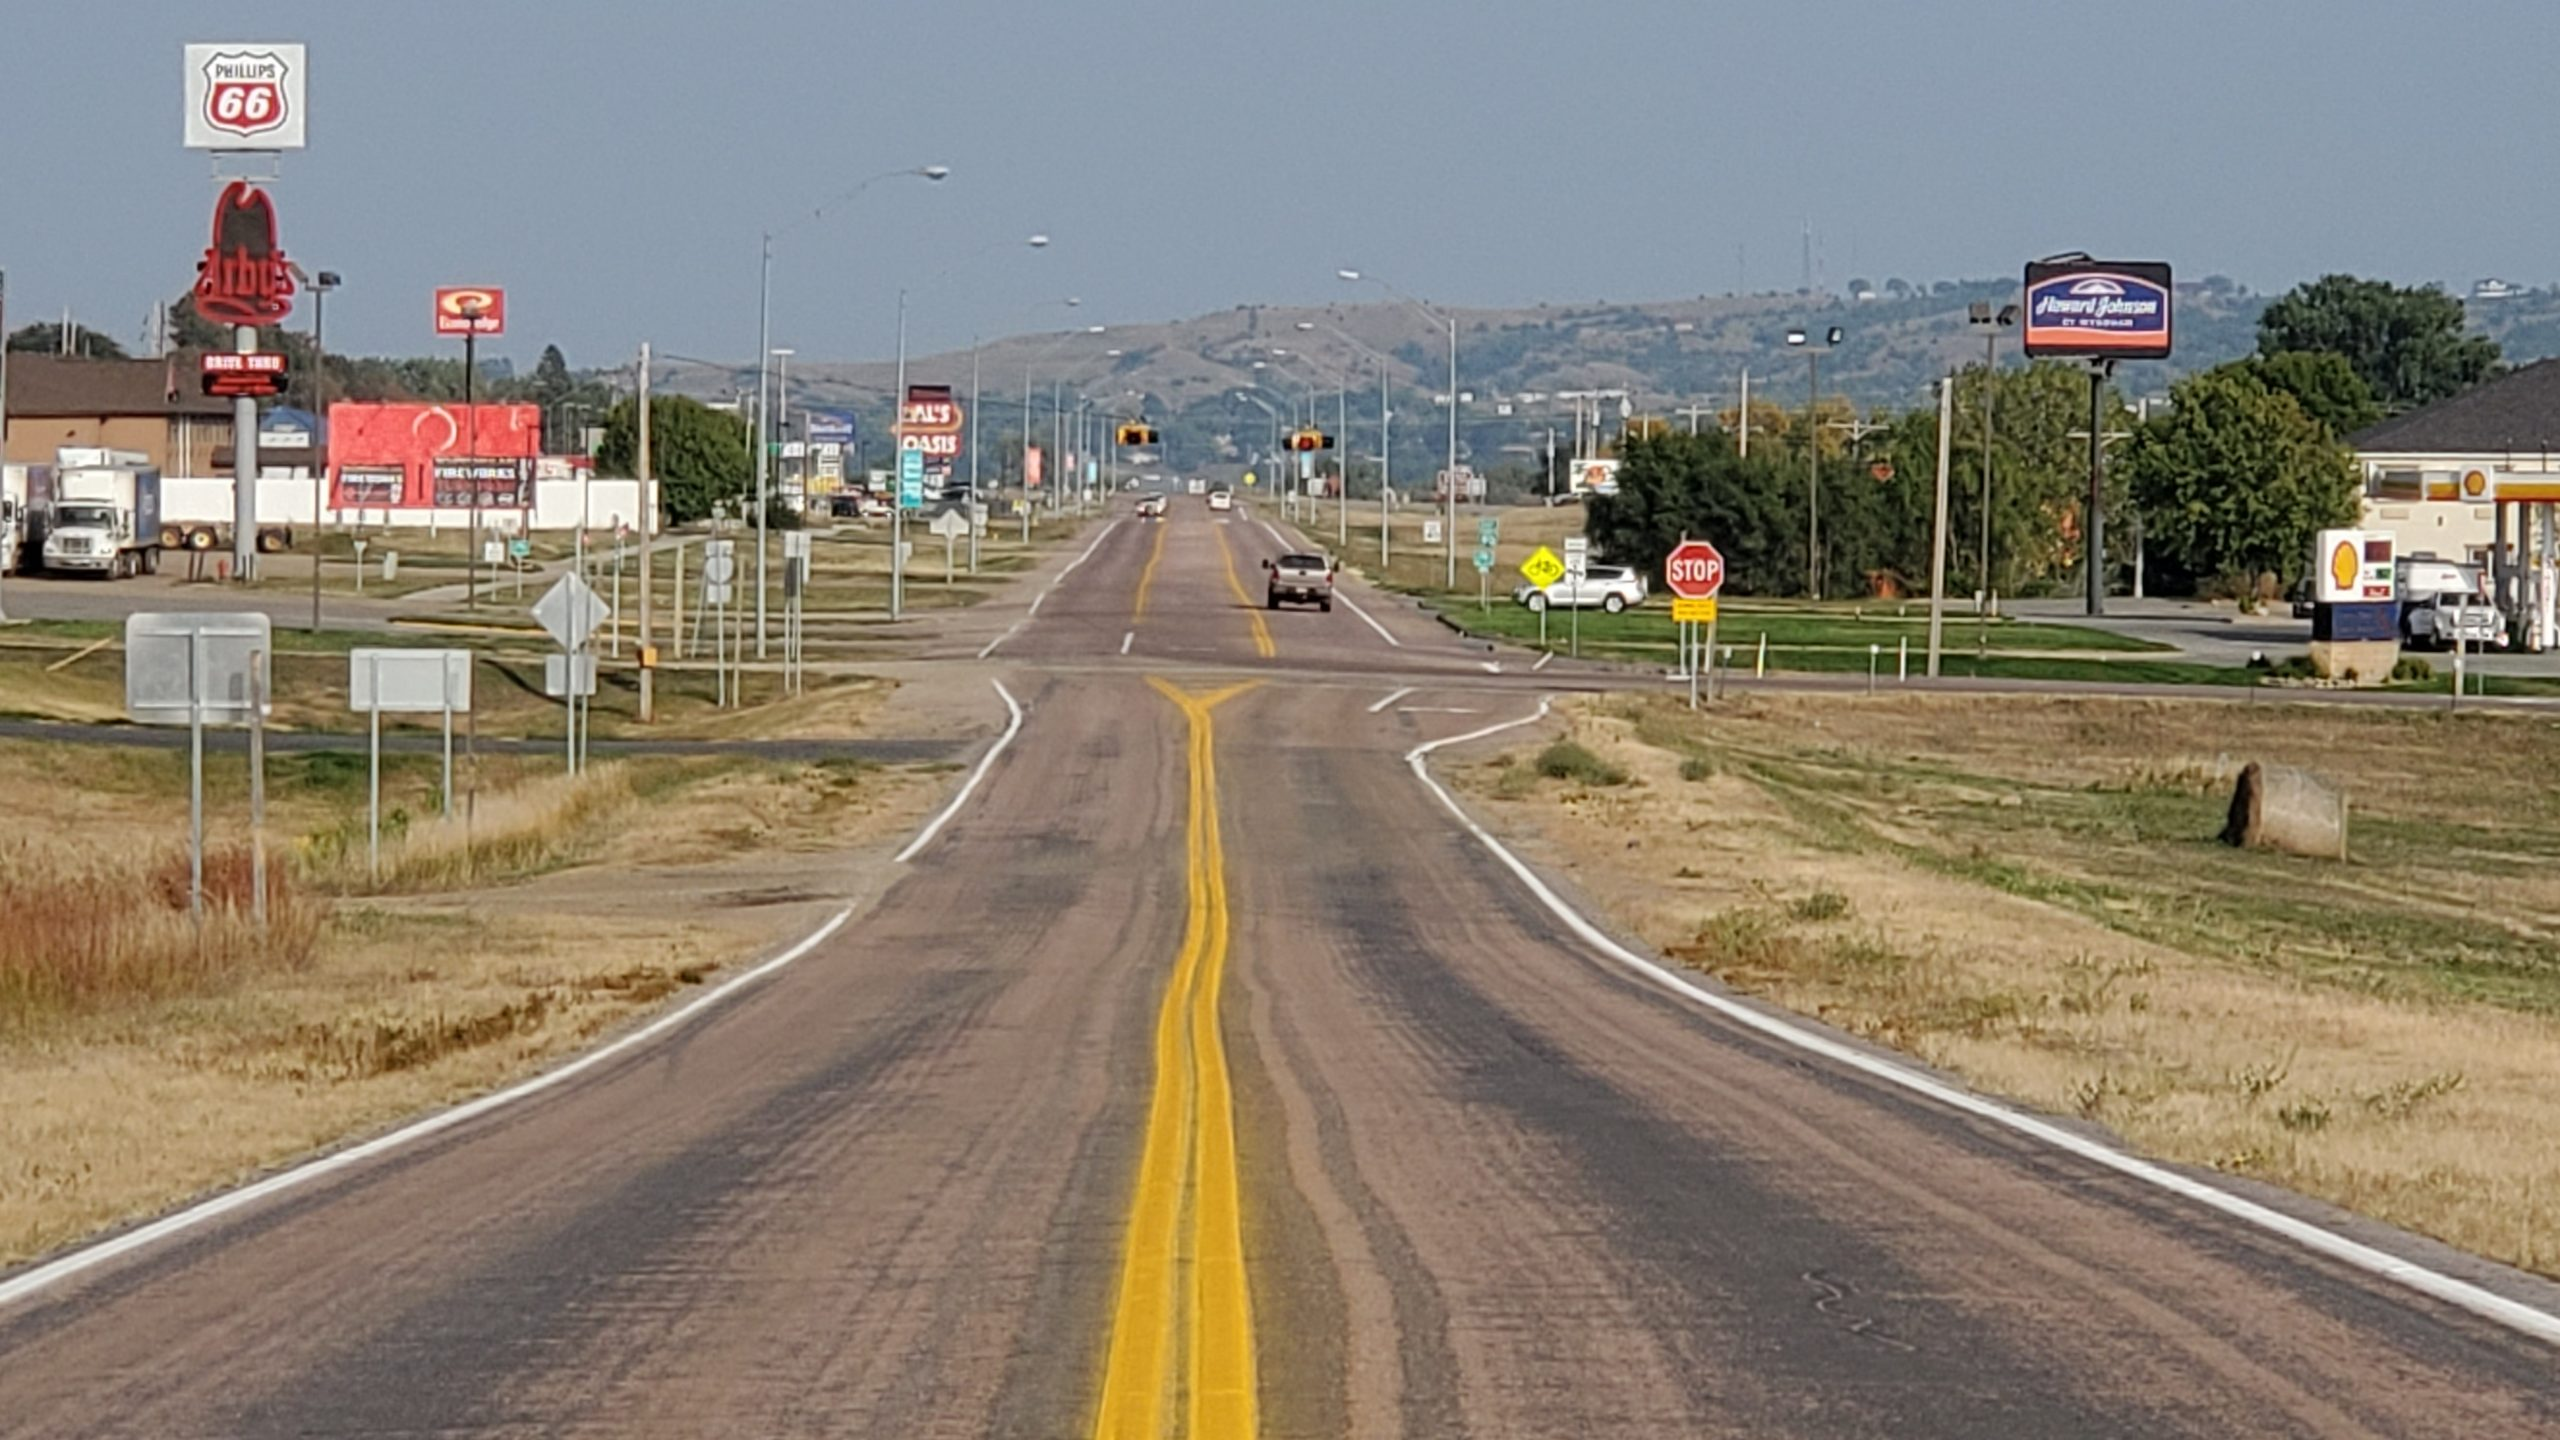 Highway 16 Businesses in Oacoma